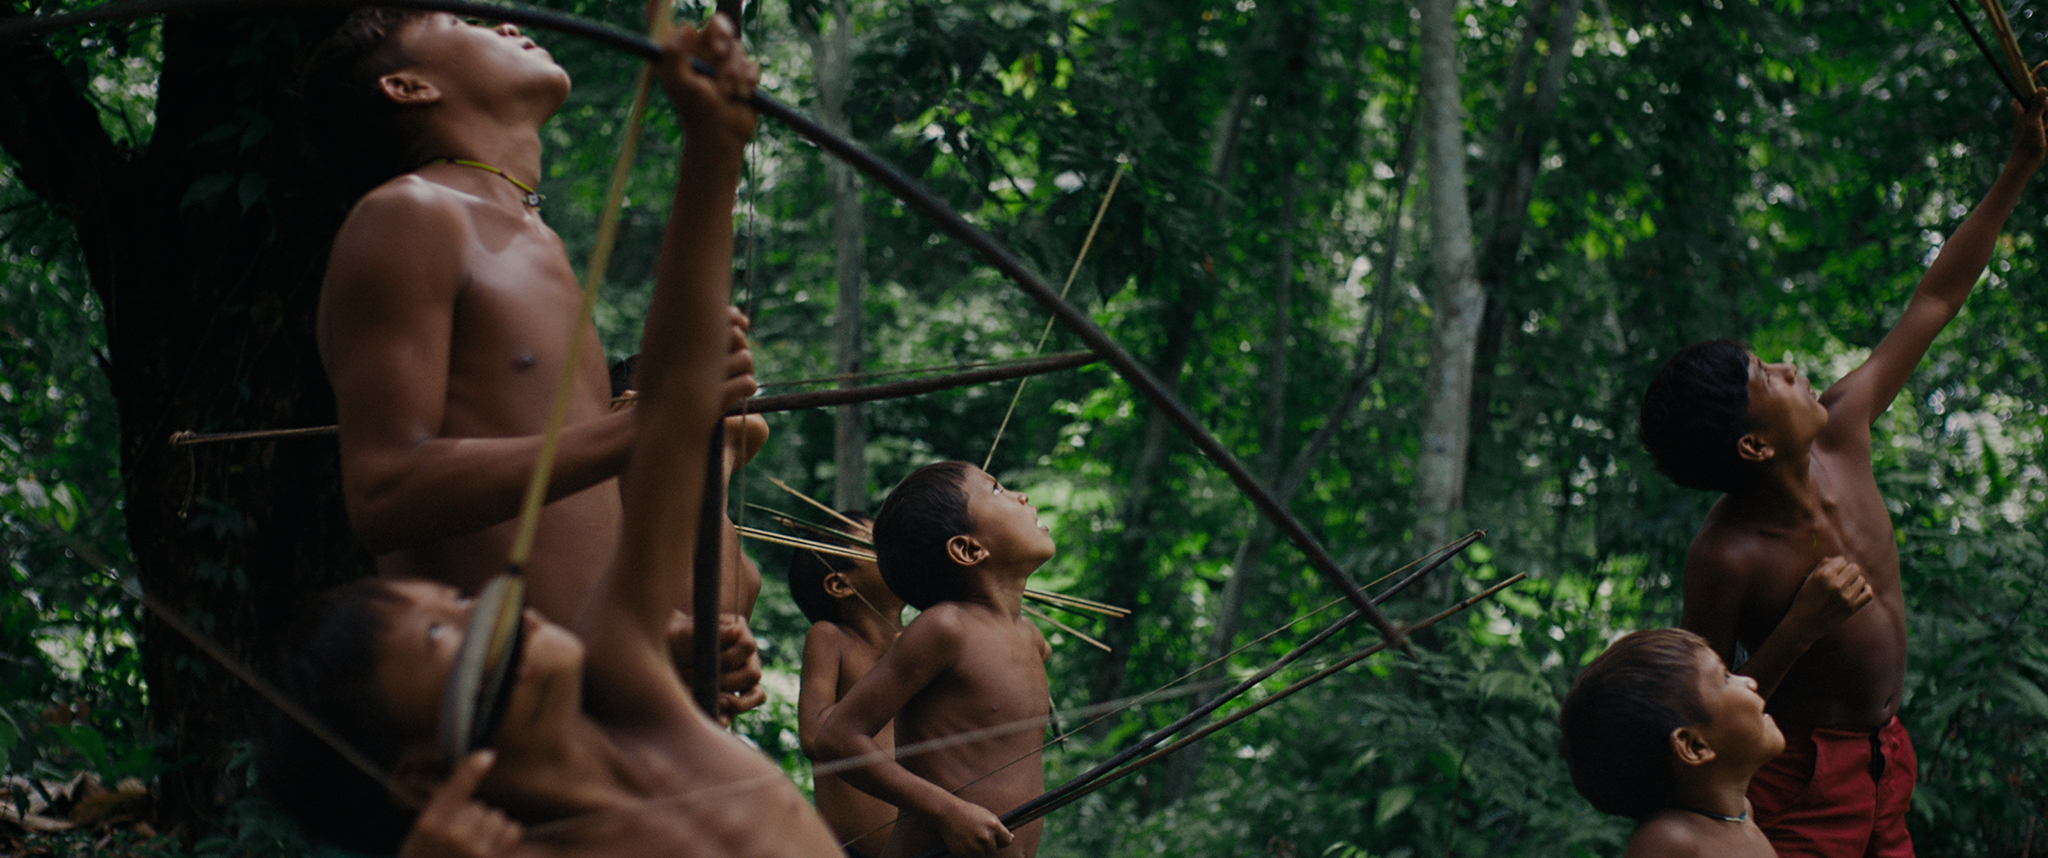 """A still from """"The Last Forest"""". Seven boys ranging from toddler to teenager stand in a forest looking up into the sky. They are all clutching bows and arrows, and two of the boys are aiming their arrows into the sky as one boy points in the same direction. The eldest of the boys stands behind the younger ones."""